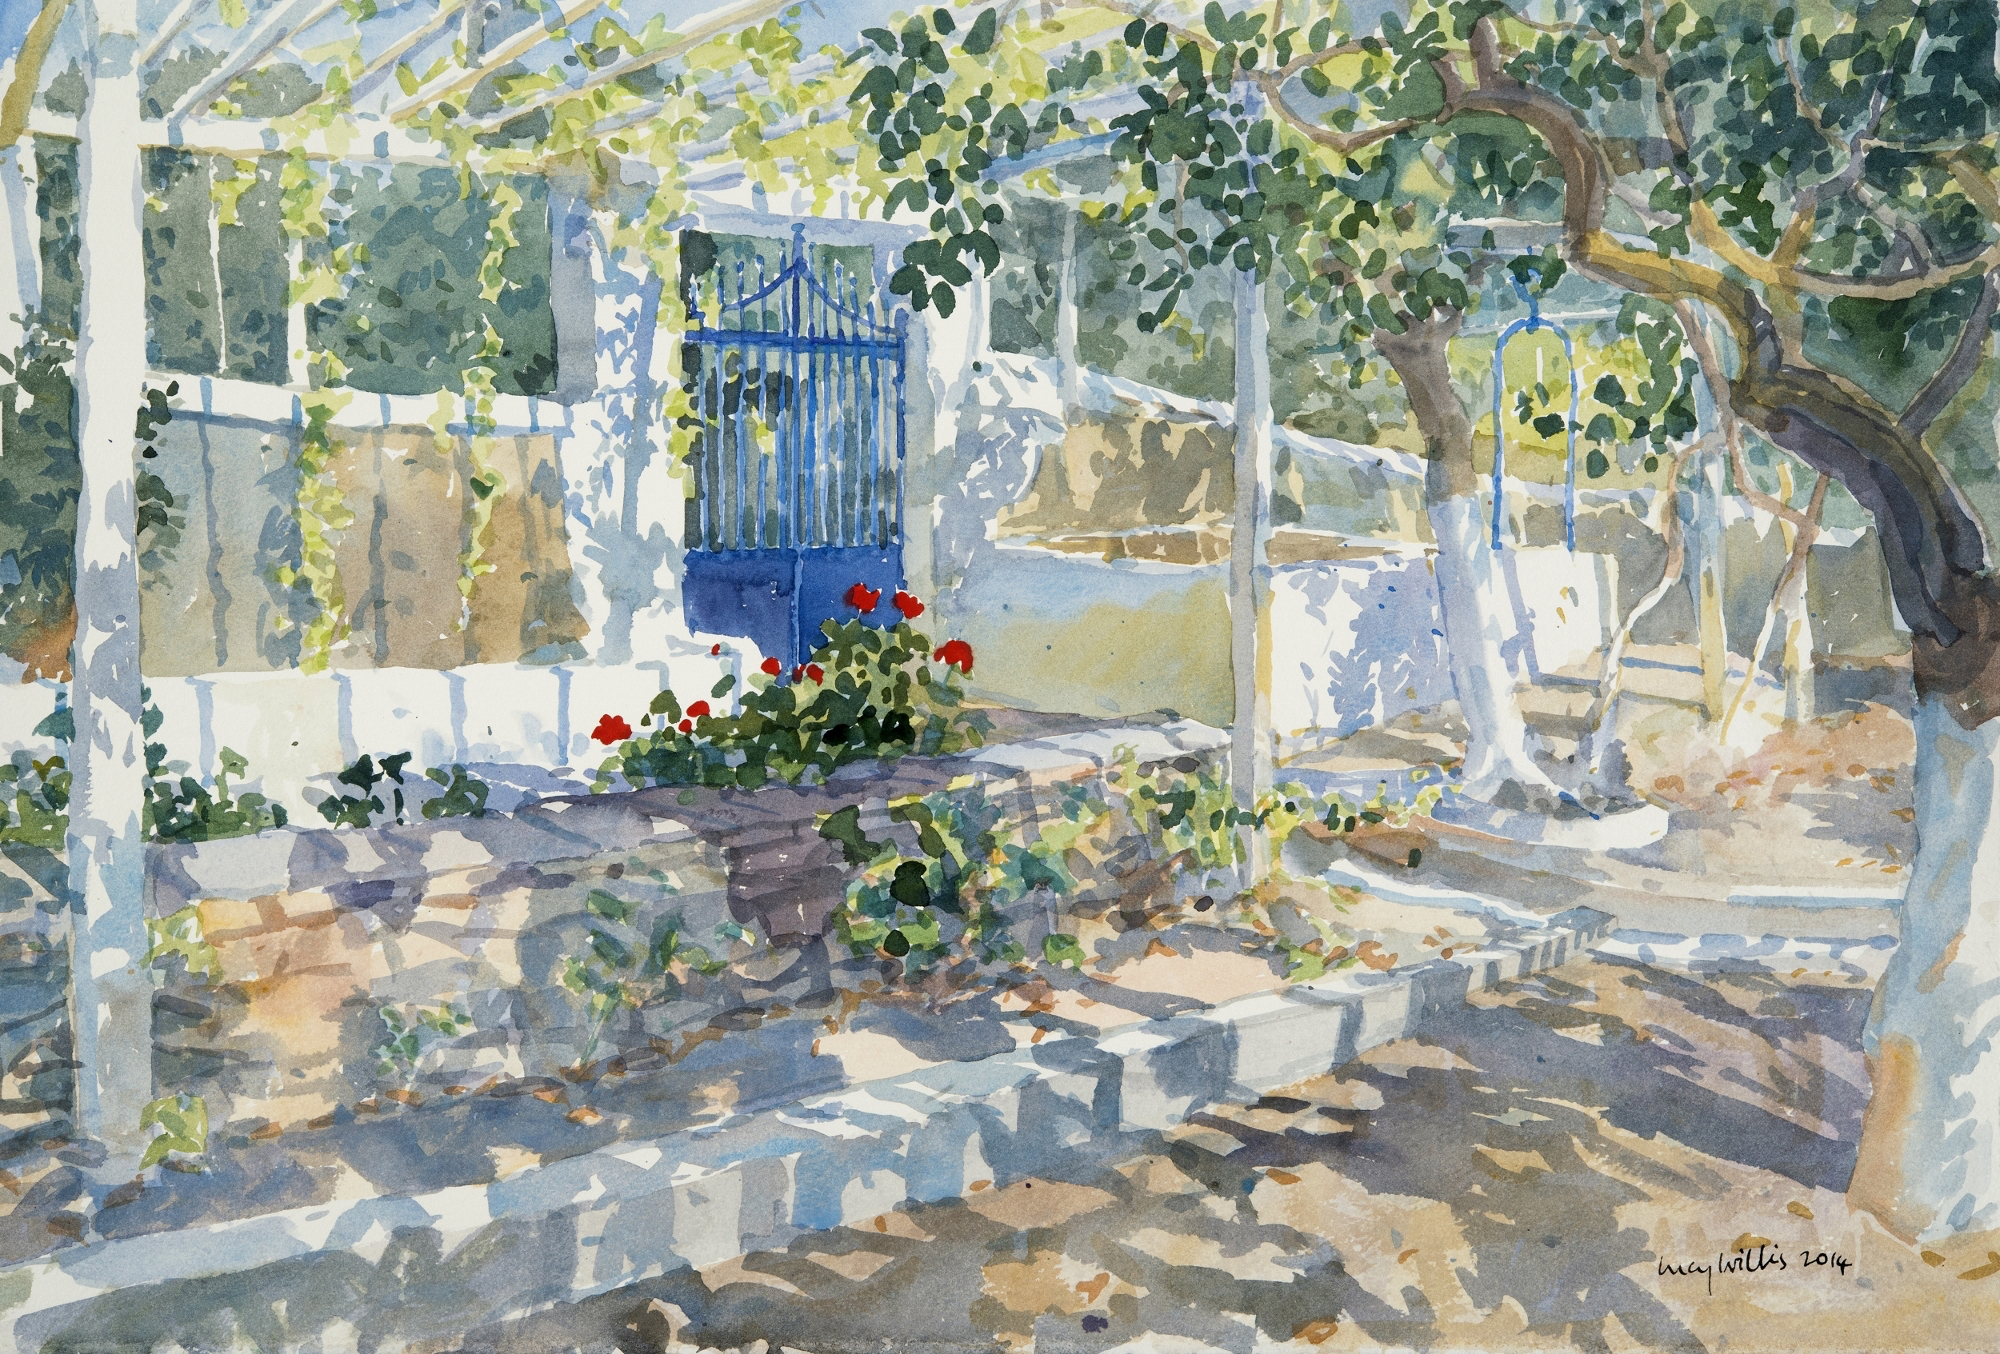 The Blue Gate, watercolour 45 x 65 cm by Lucy Willis